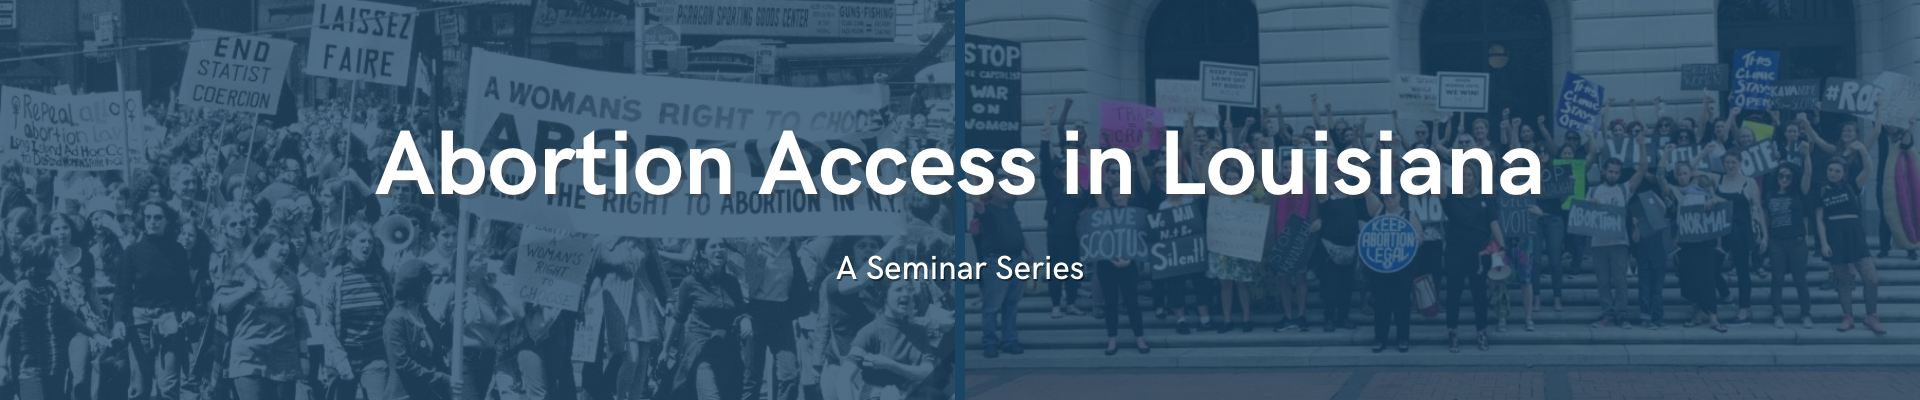 Abortion Access in Louisiana Seminar Series